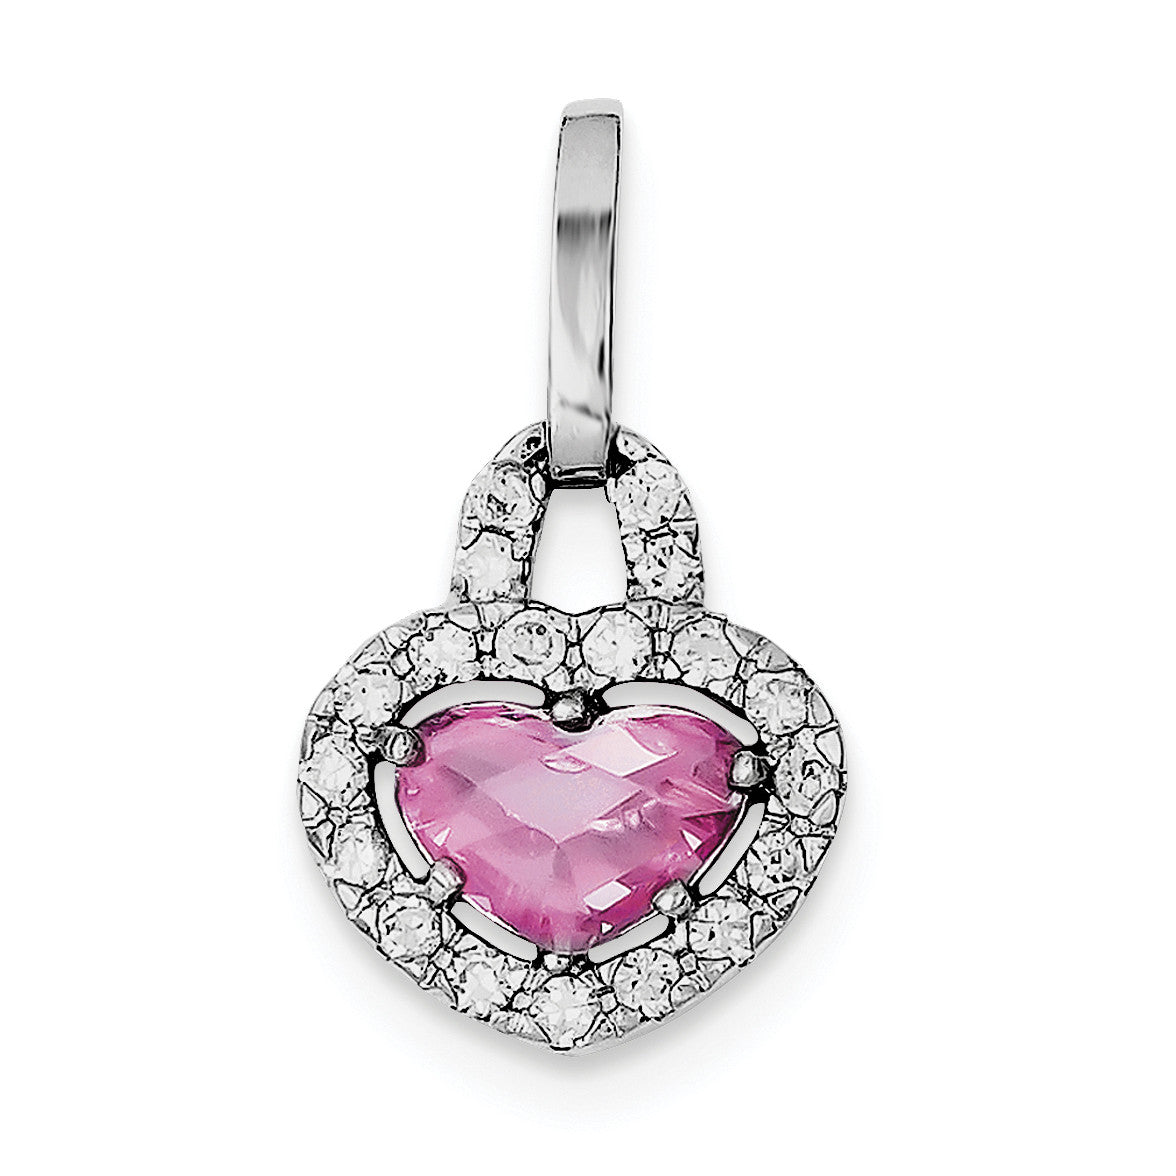 Sterling SilverRhodium Plated Pink and Clear CZ Heart Pendant QP617 - shirin-diamonds